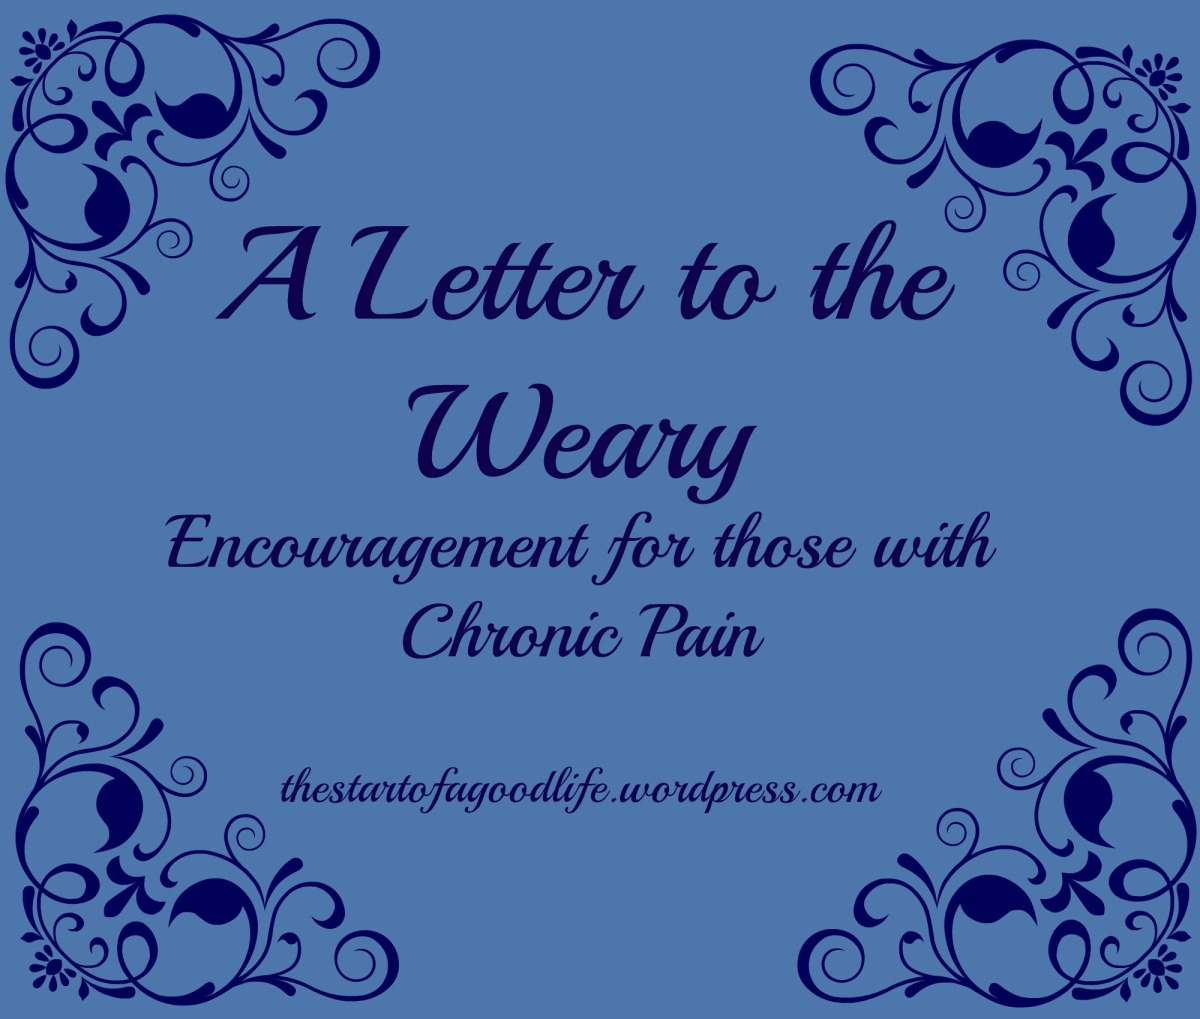 A Letter to the Weary